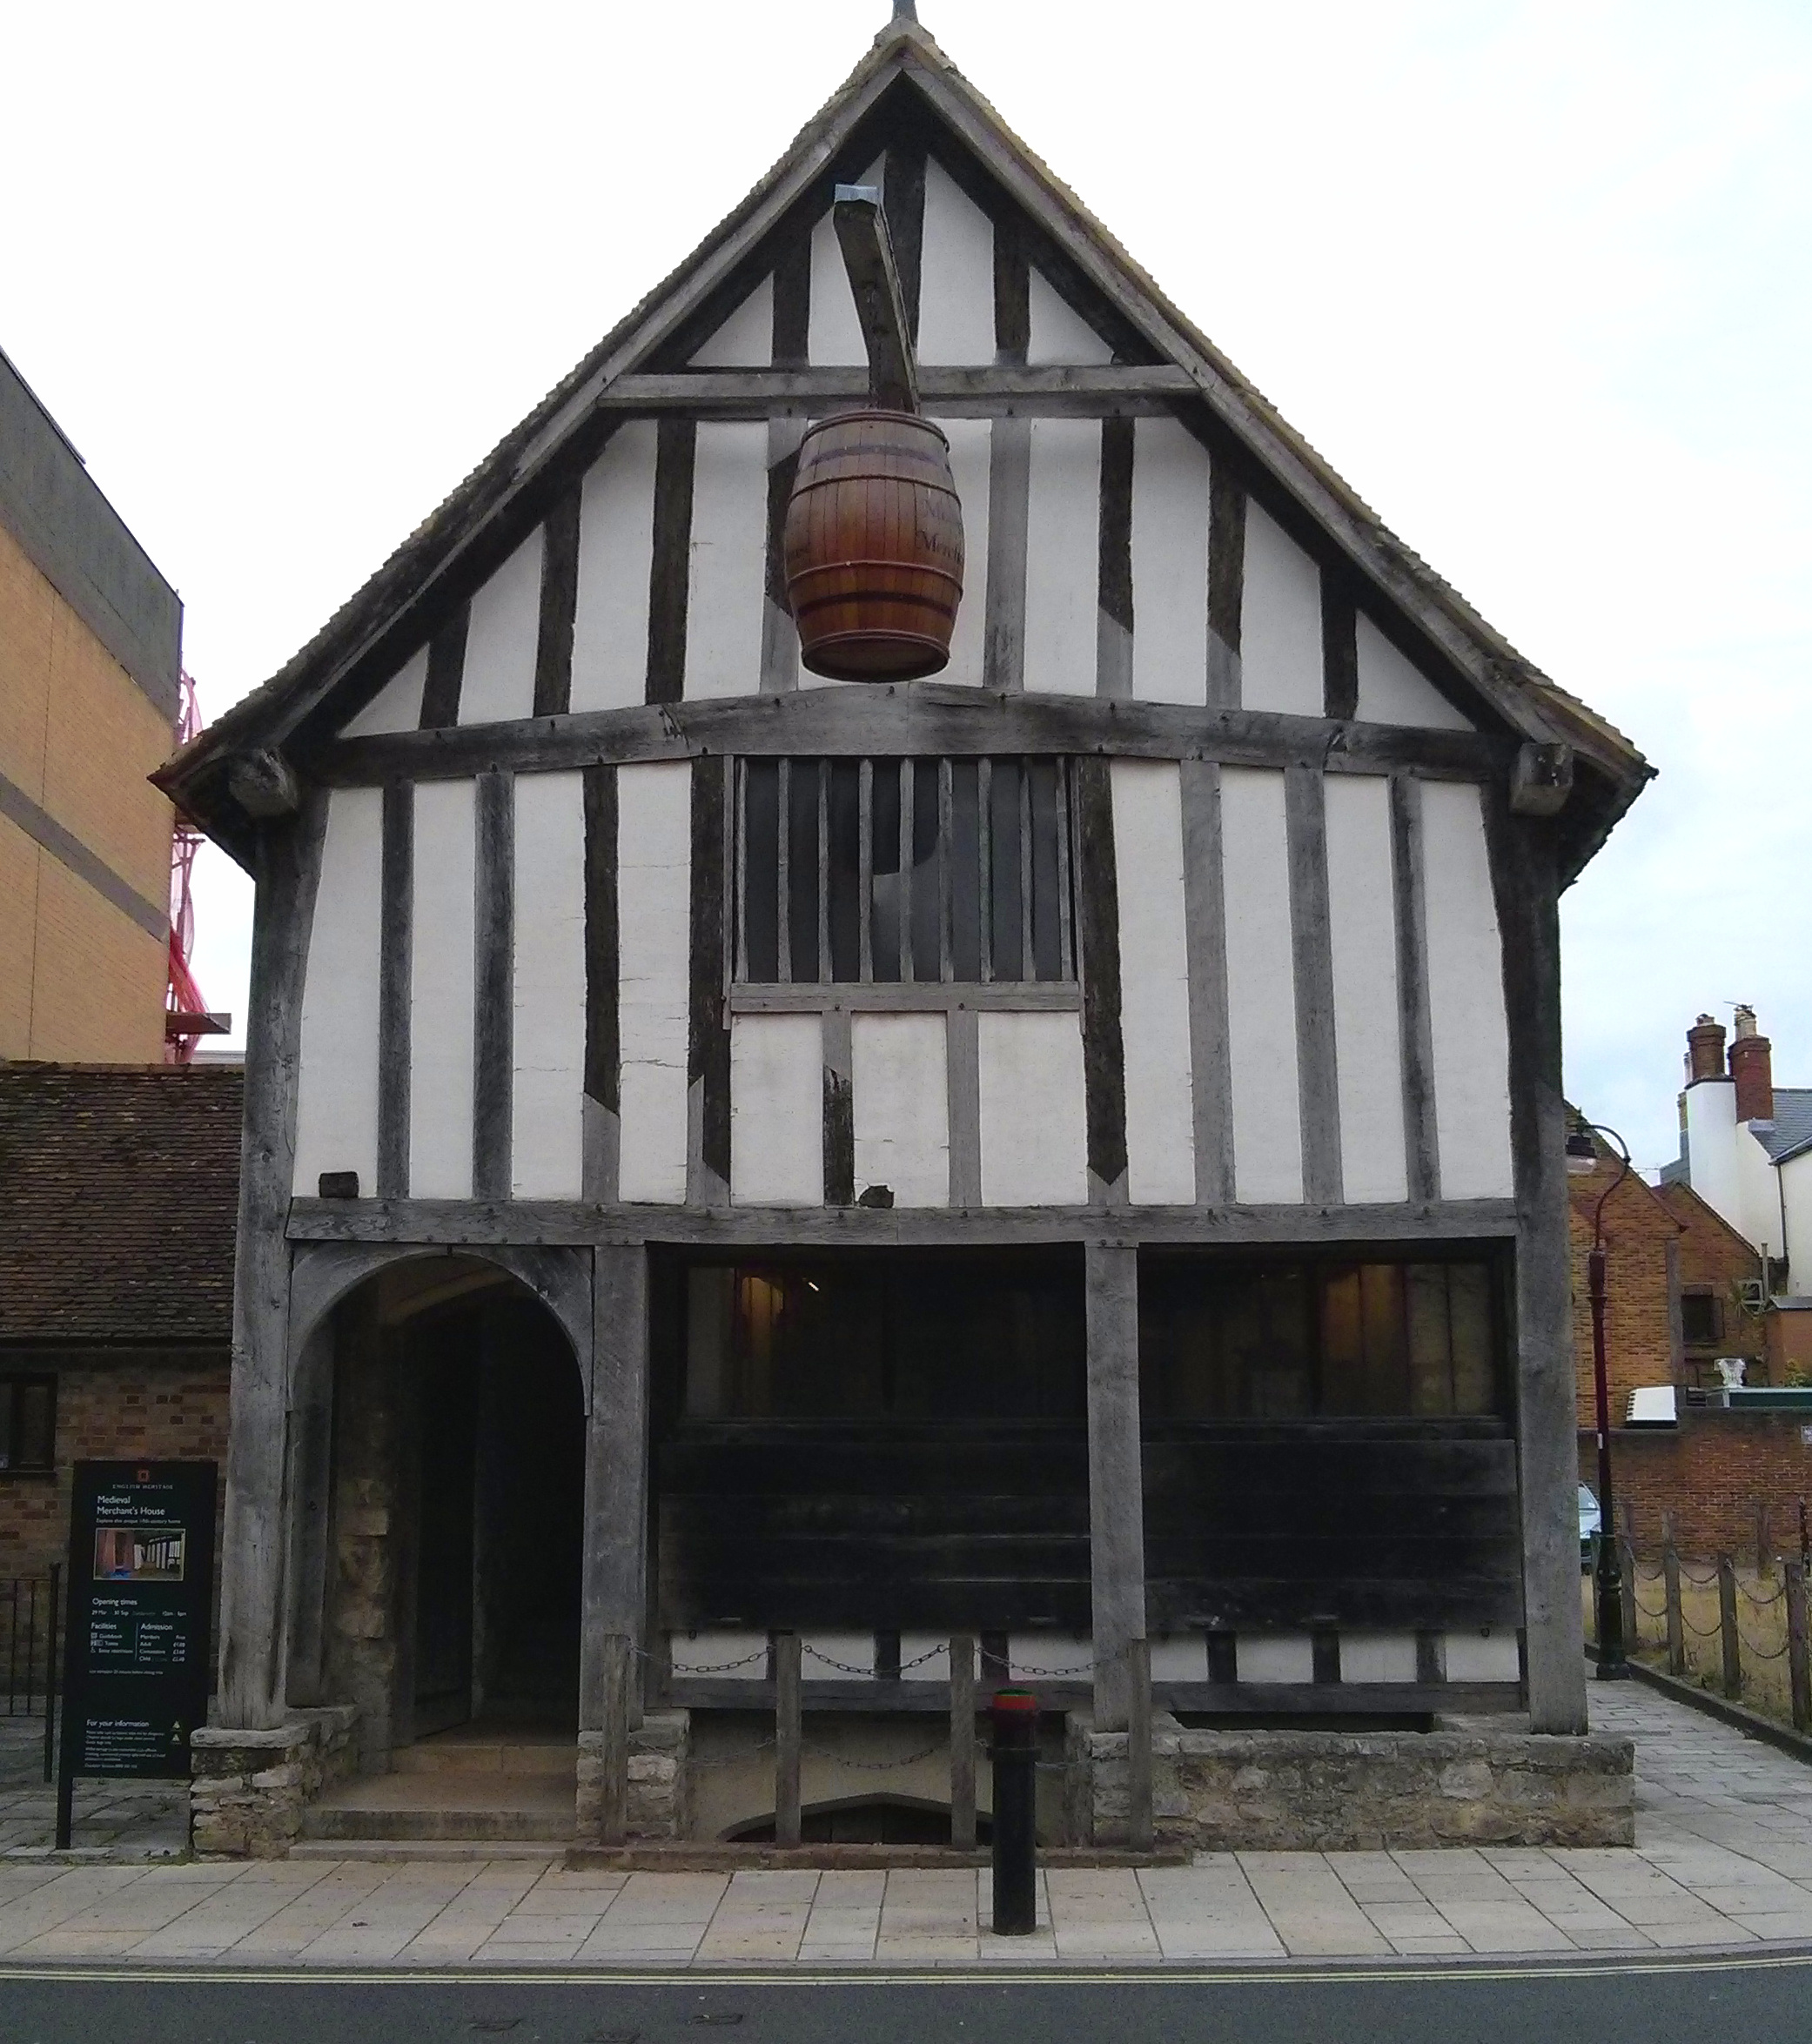 File:Medieval Merchant's House Front View.jpg - Wikimedia ...